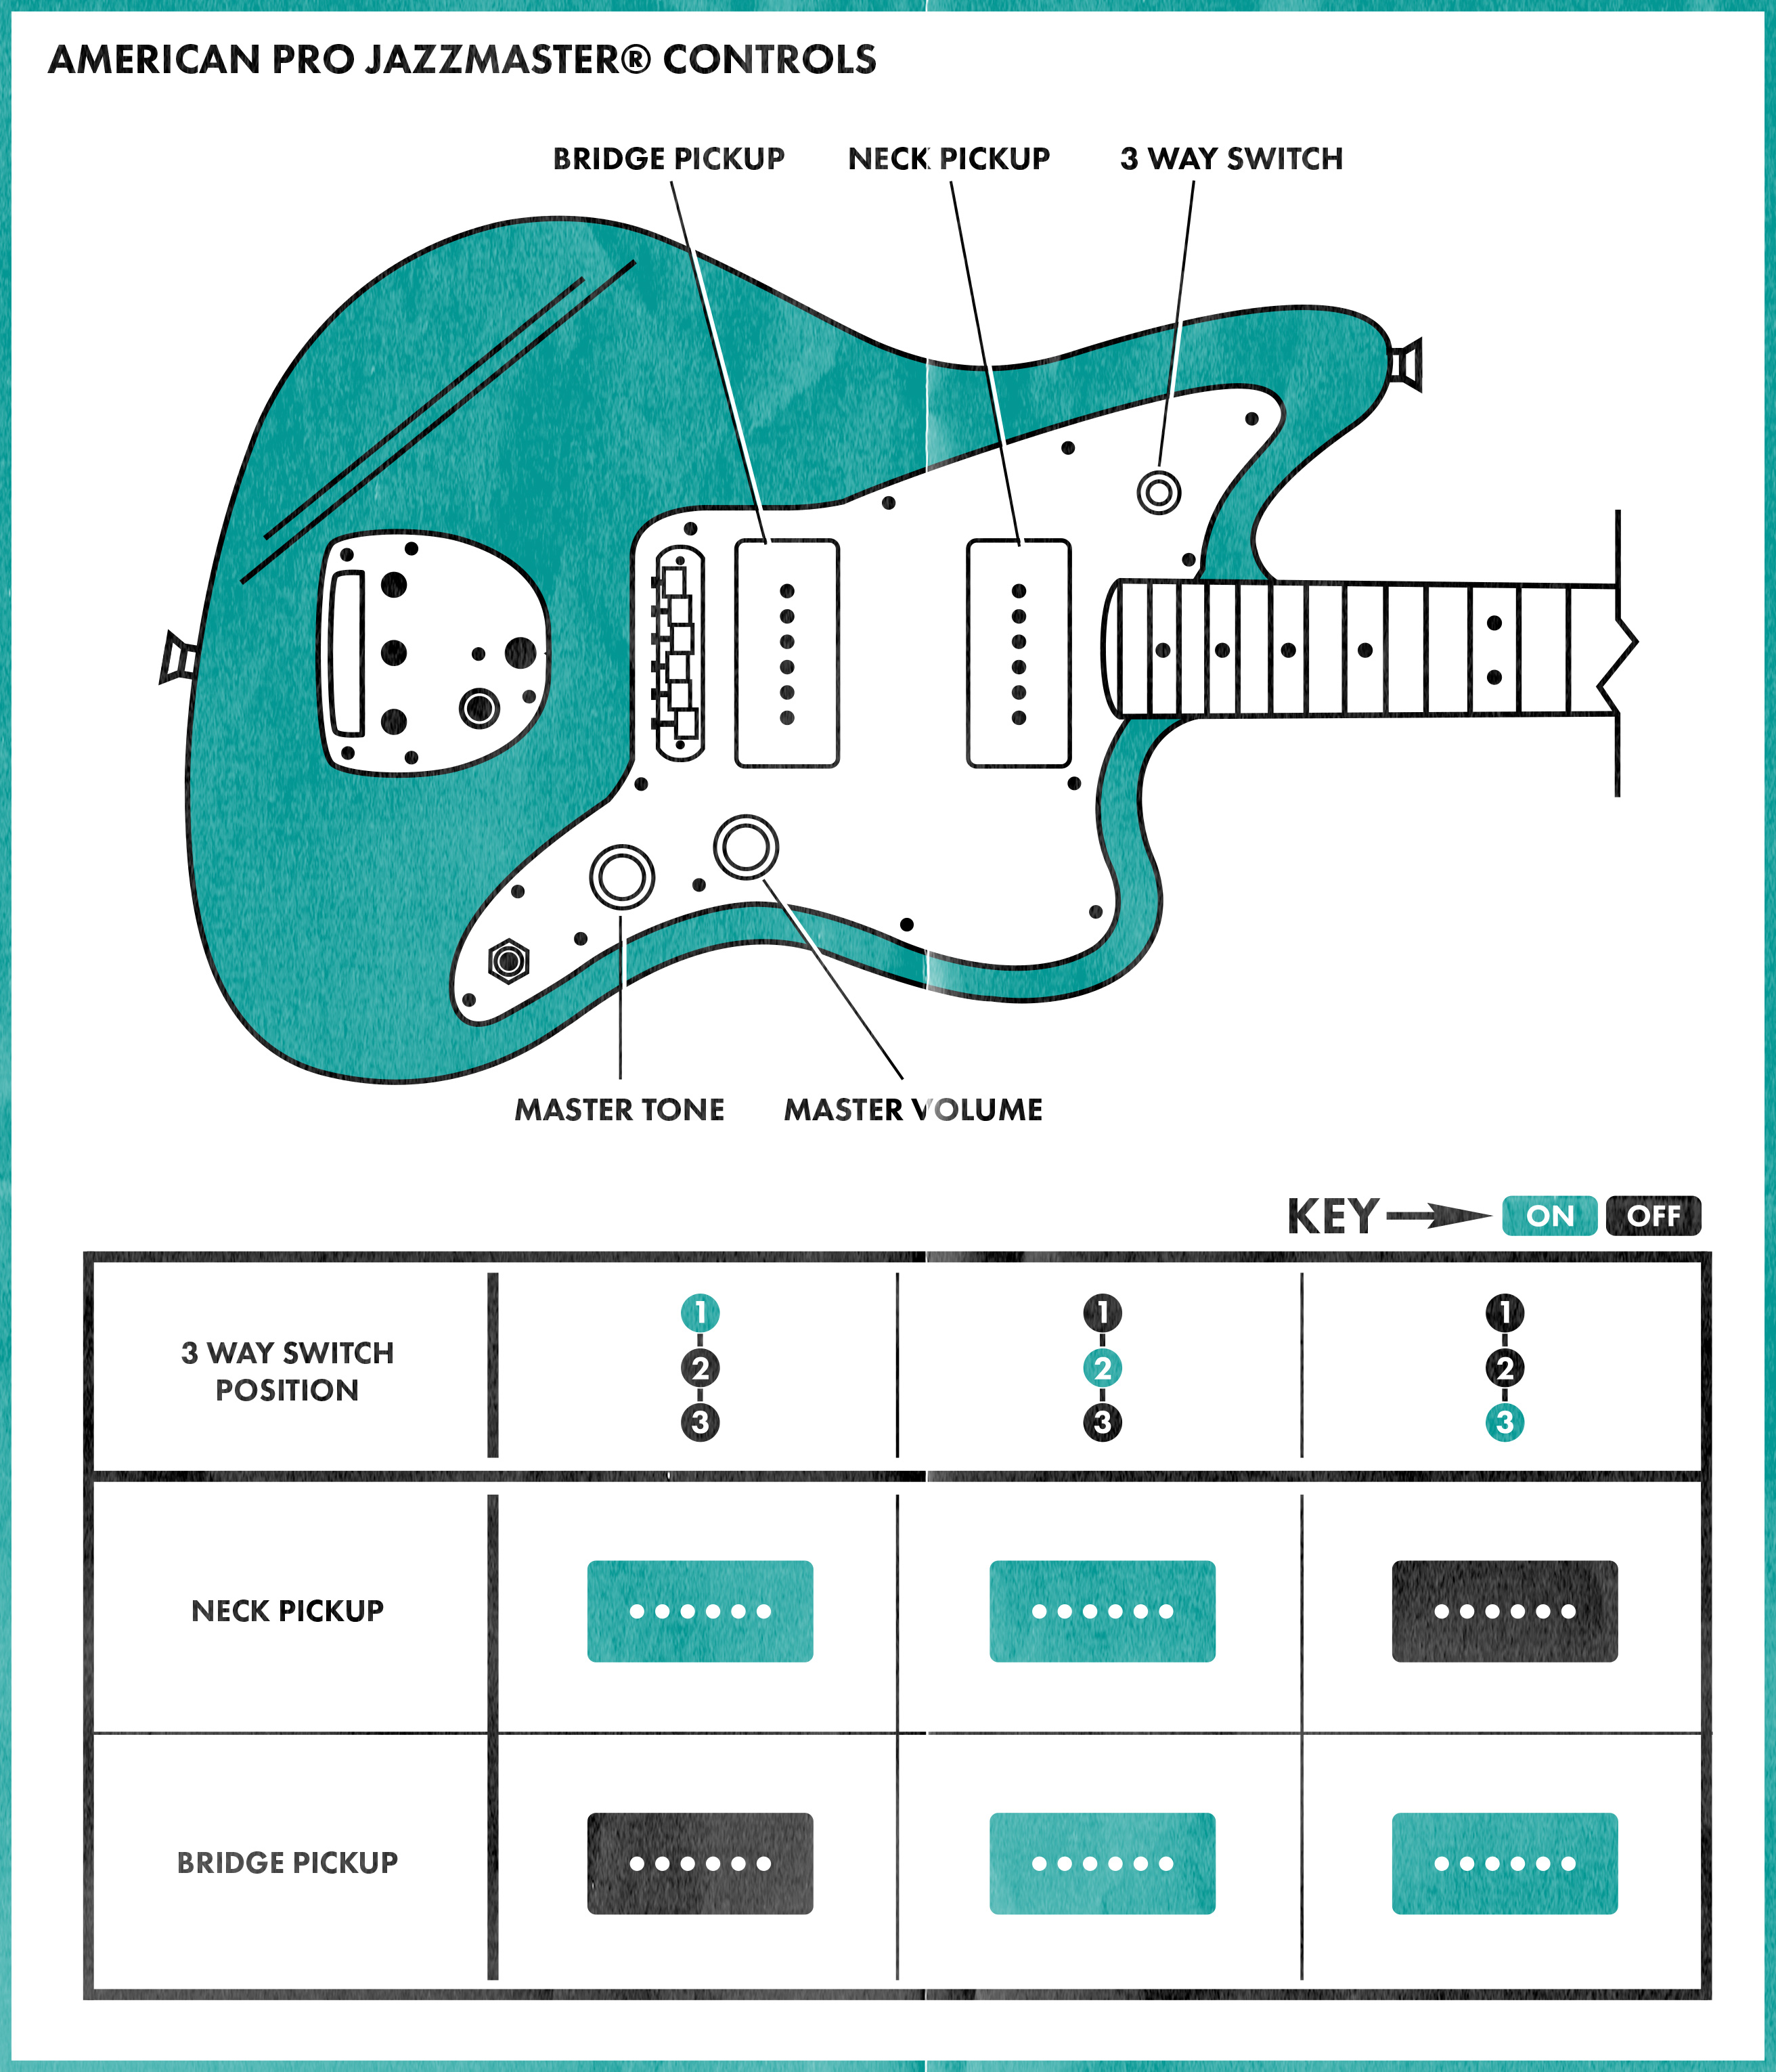 Wiring diagram for fender jazzmaster example electrical wiring jazzmaster controls explained fender jazzmaster rh fender com fender american telecaster wiring diagram fender tele wiring diagrams asfbconference2016 Image collections